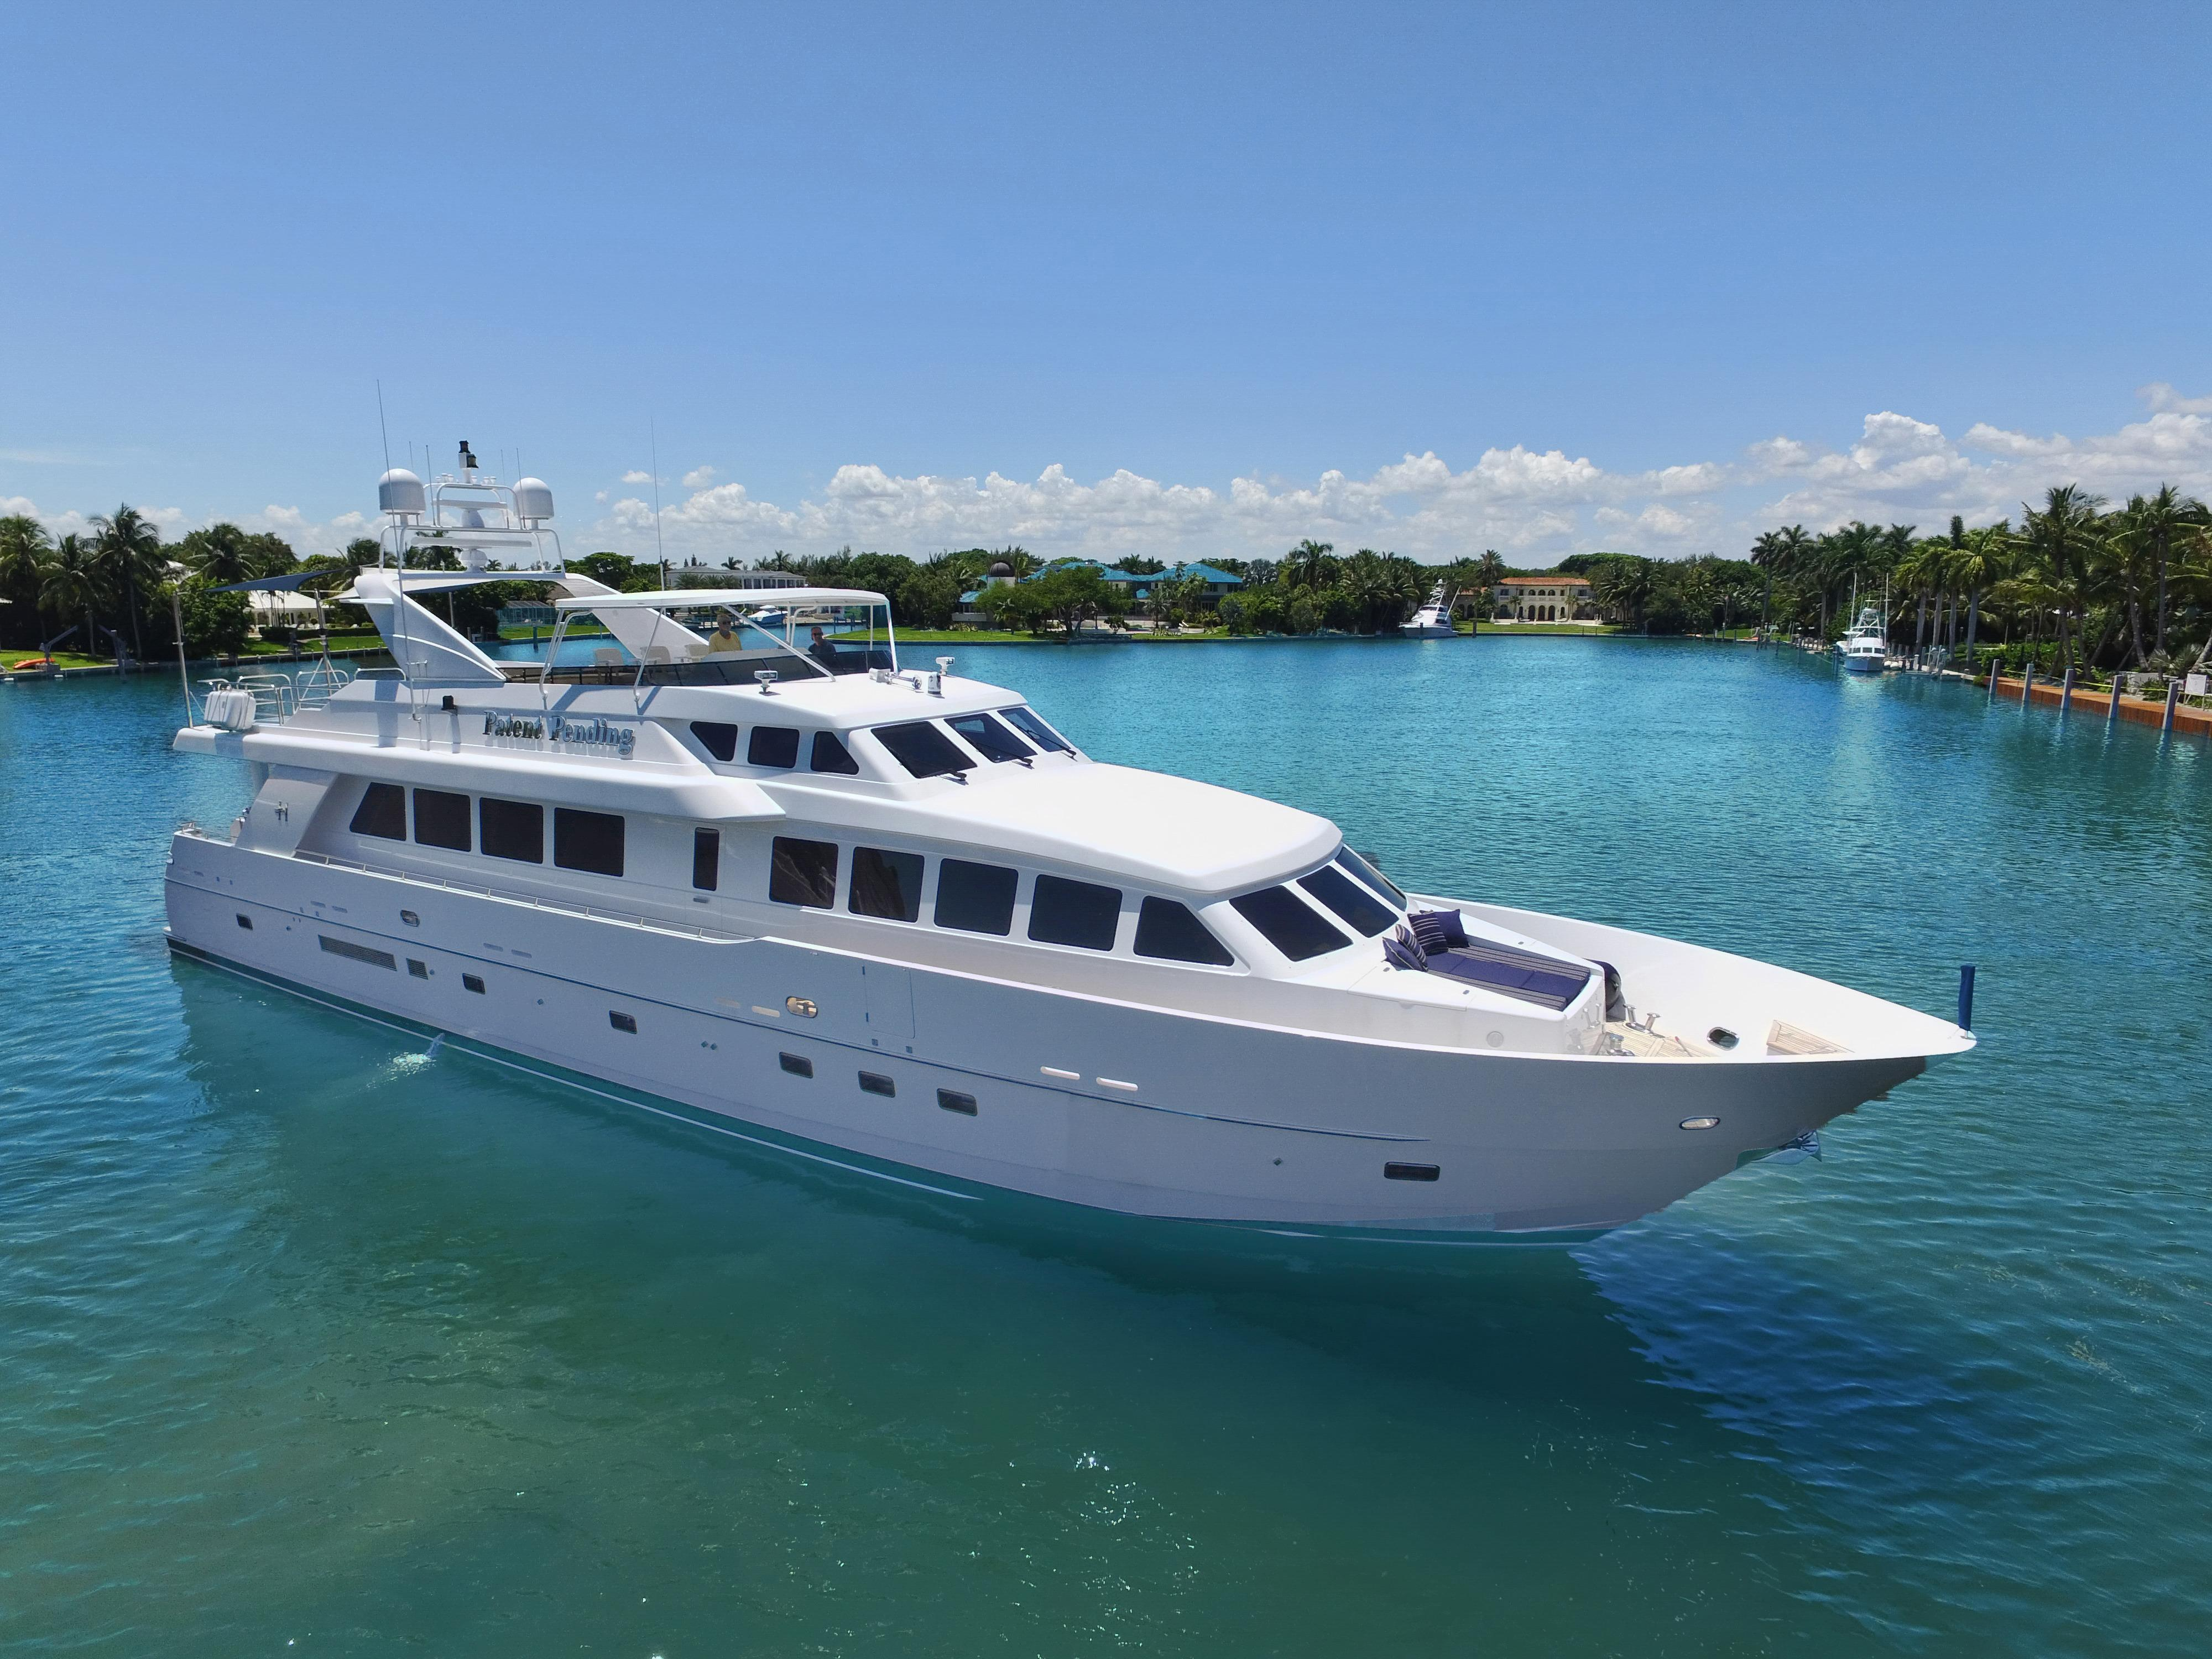 Midnight Express Boat For Sale >> 95 HARGRAVE PATENT PENDING 2002 Miami | Denison Yacht Sales